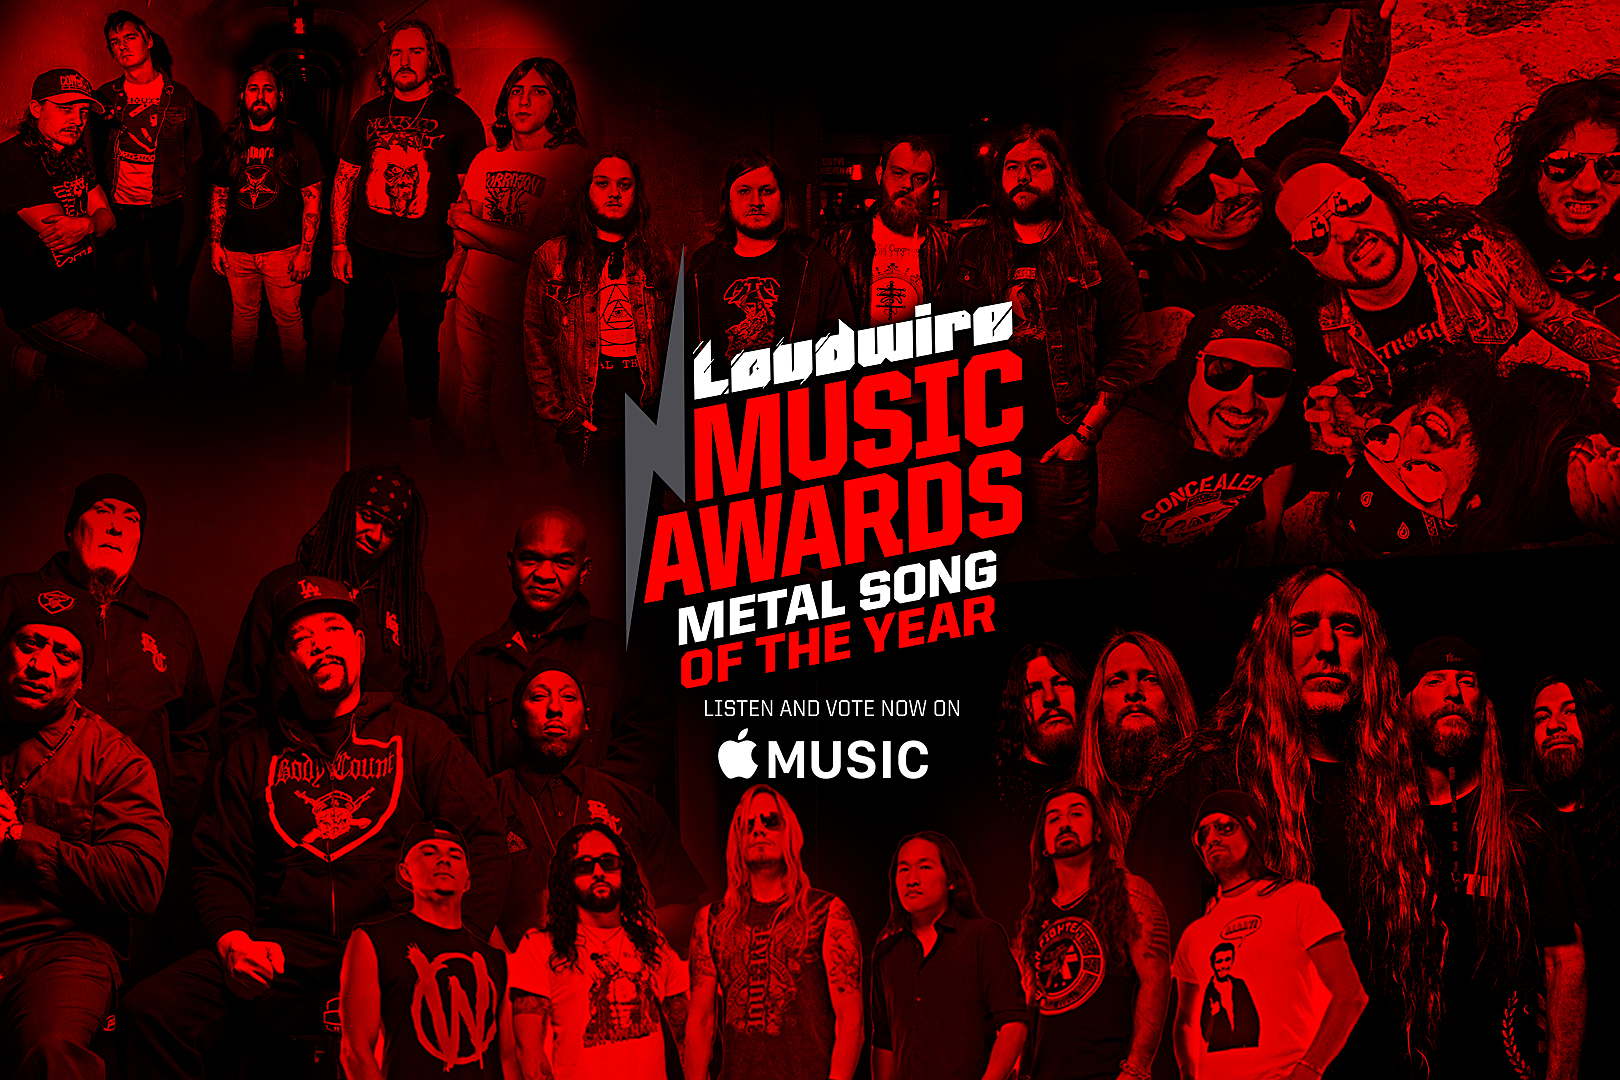 Vote for the Metal Song of the Year – 2017 Loudwire Music Awards